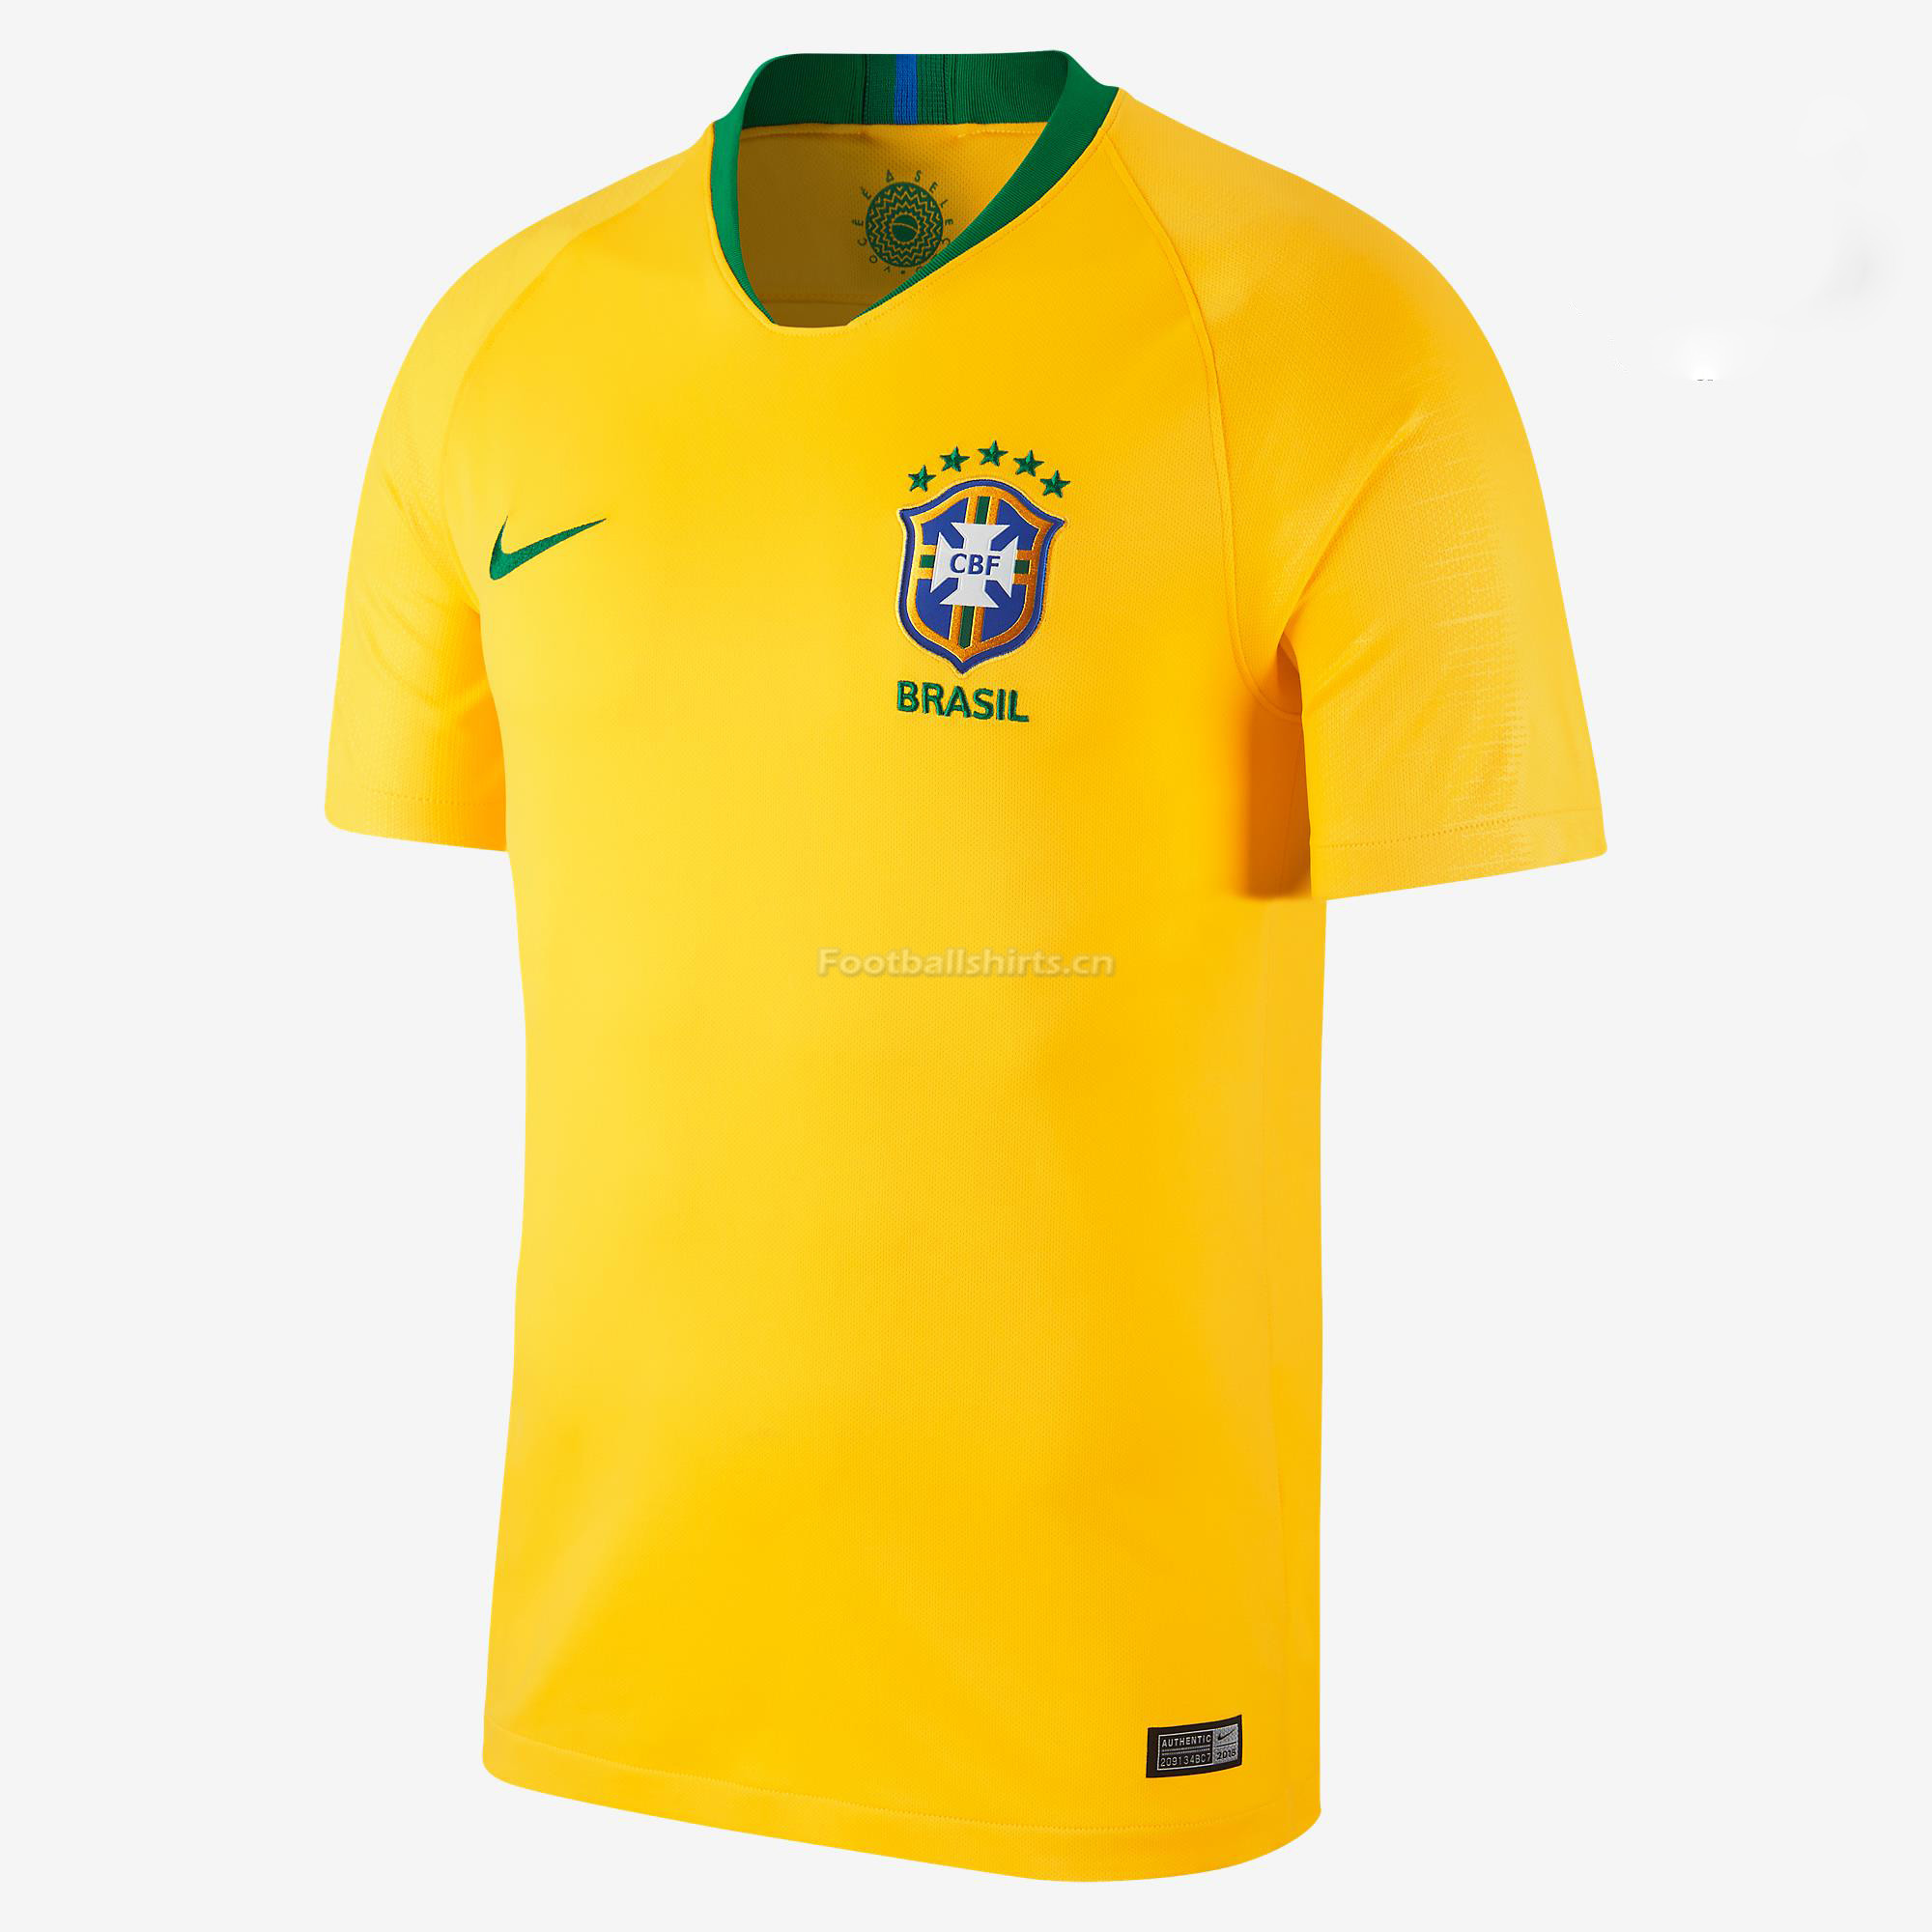 Brazil 2018 World Cup Home Soccer Jersey